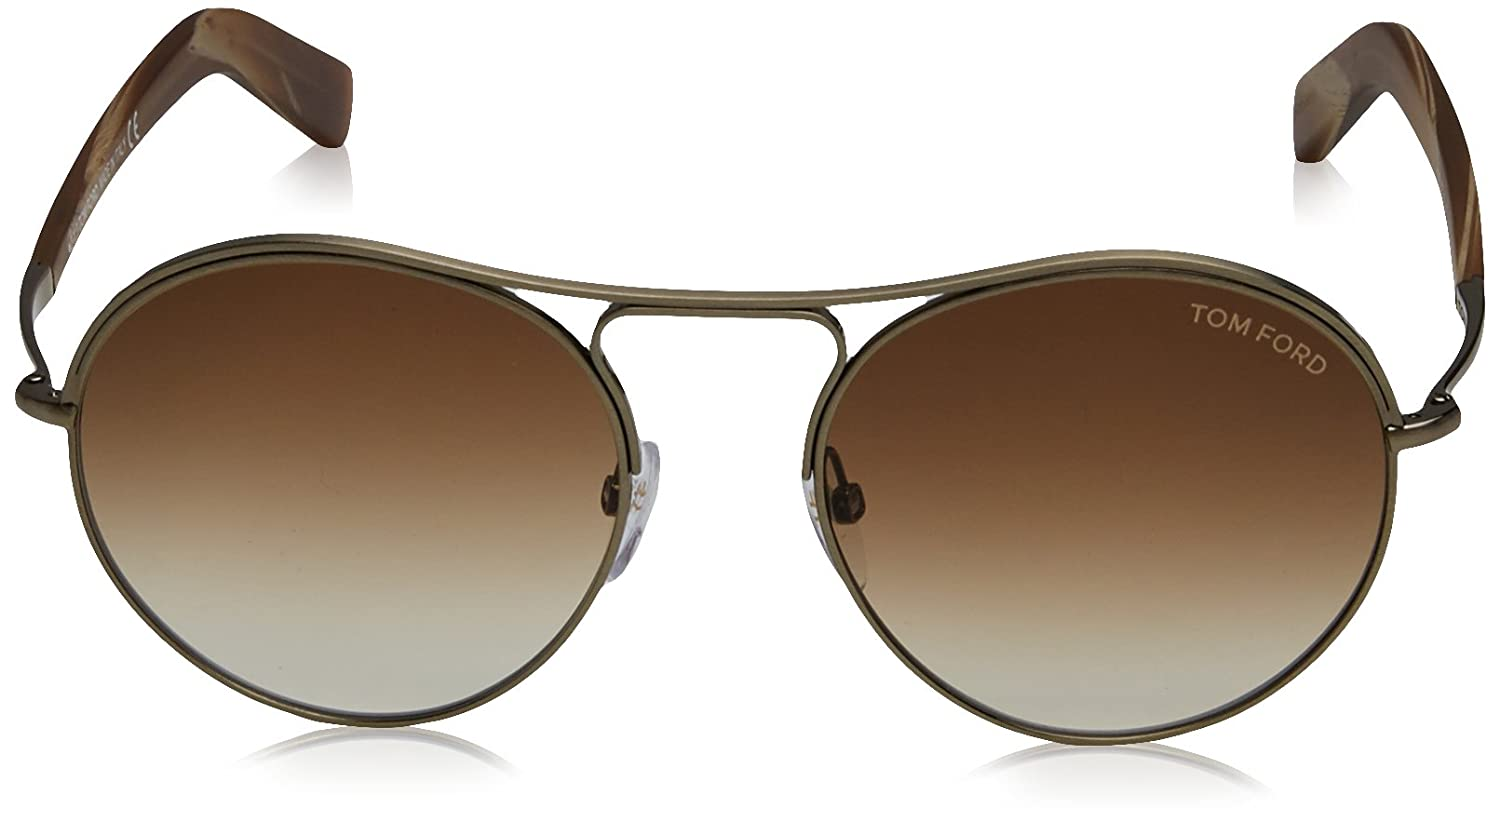 a8acac4d6b Tom Ford Sunglasses TF 449 Jessie 33F Gold Brown Multicolor 54mm at Amazon  Men s Clothing store